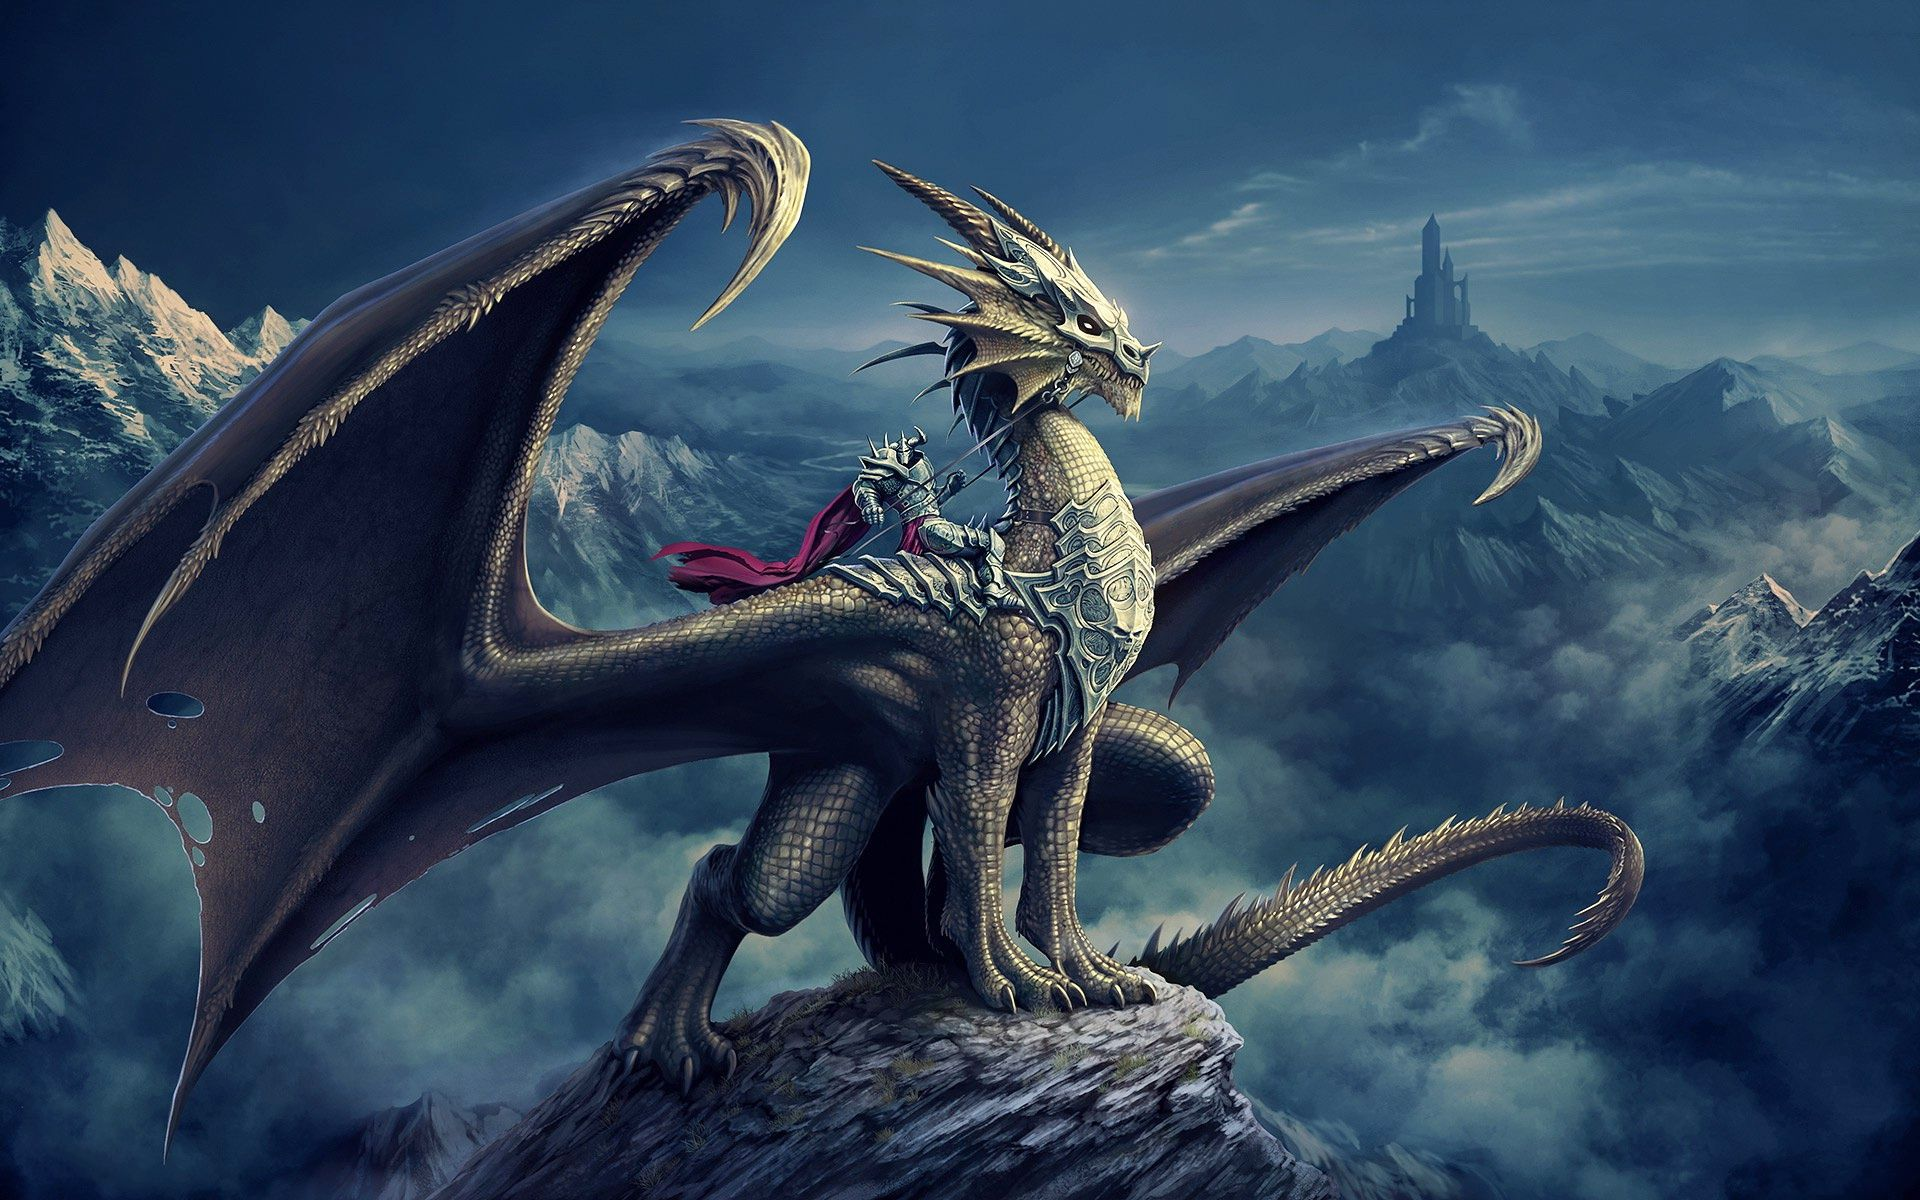 Hd Dragon Wallpapers Top Free Hd Dragon Backgrounds Wallpaperaccess